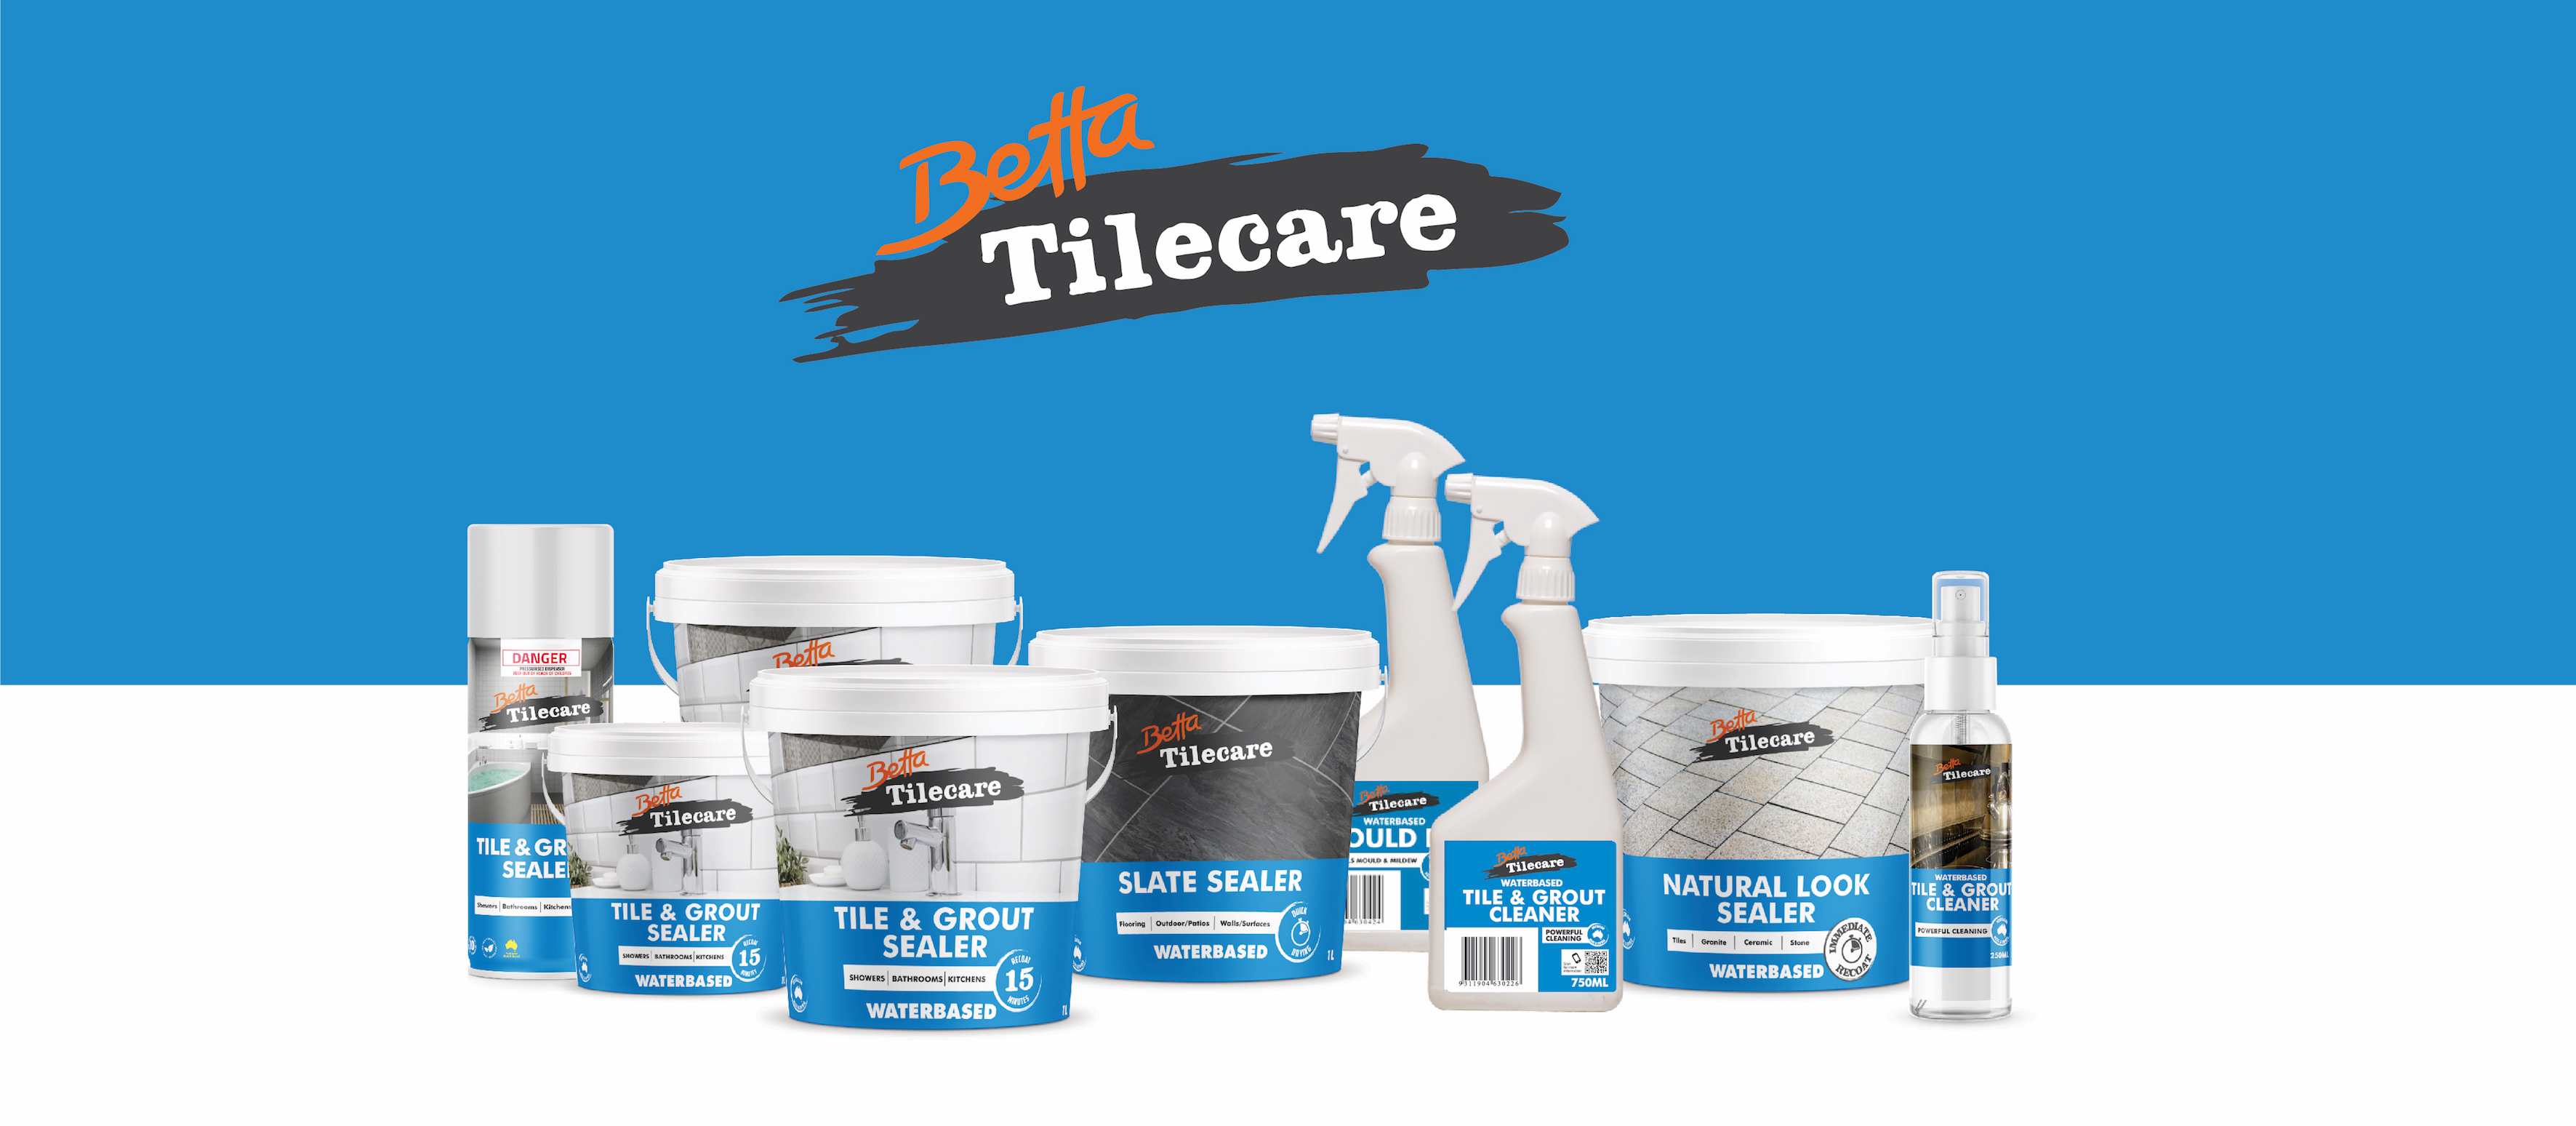 Betta Tilecare - Home